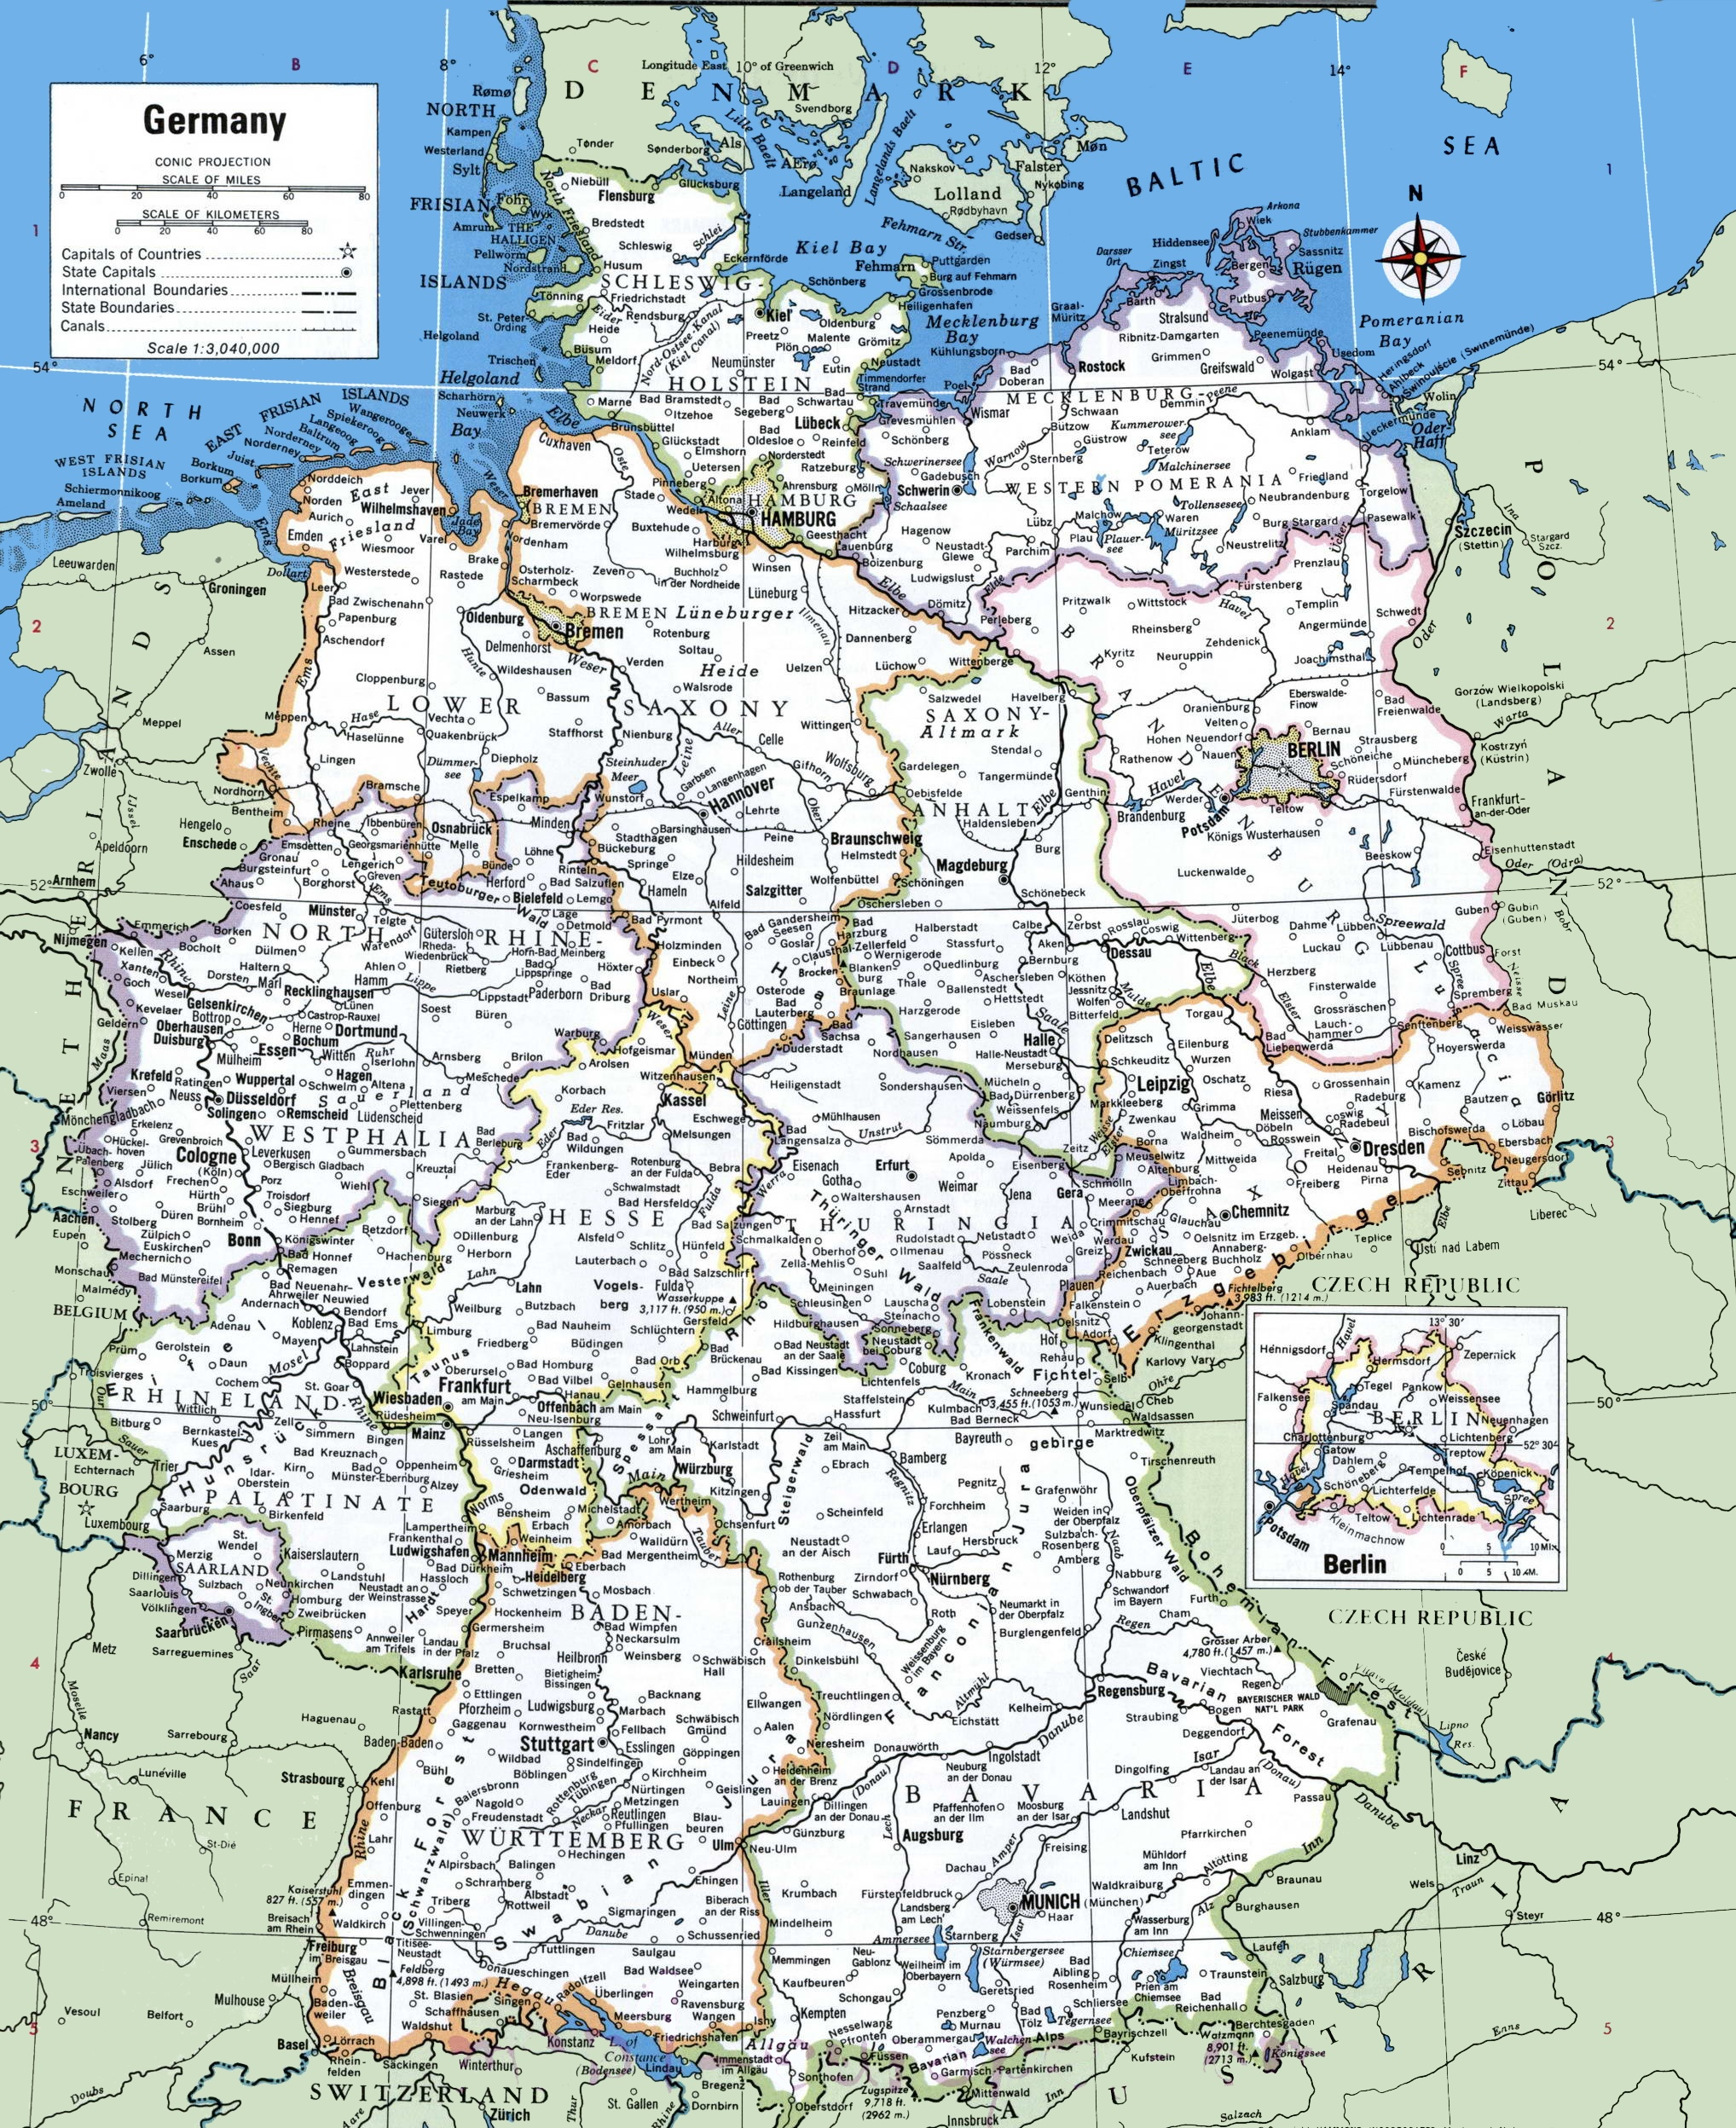 Gelsenkirchen Germany Map.Map Of Germany With Cities And Towns